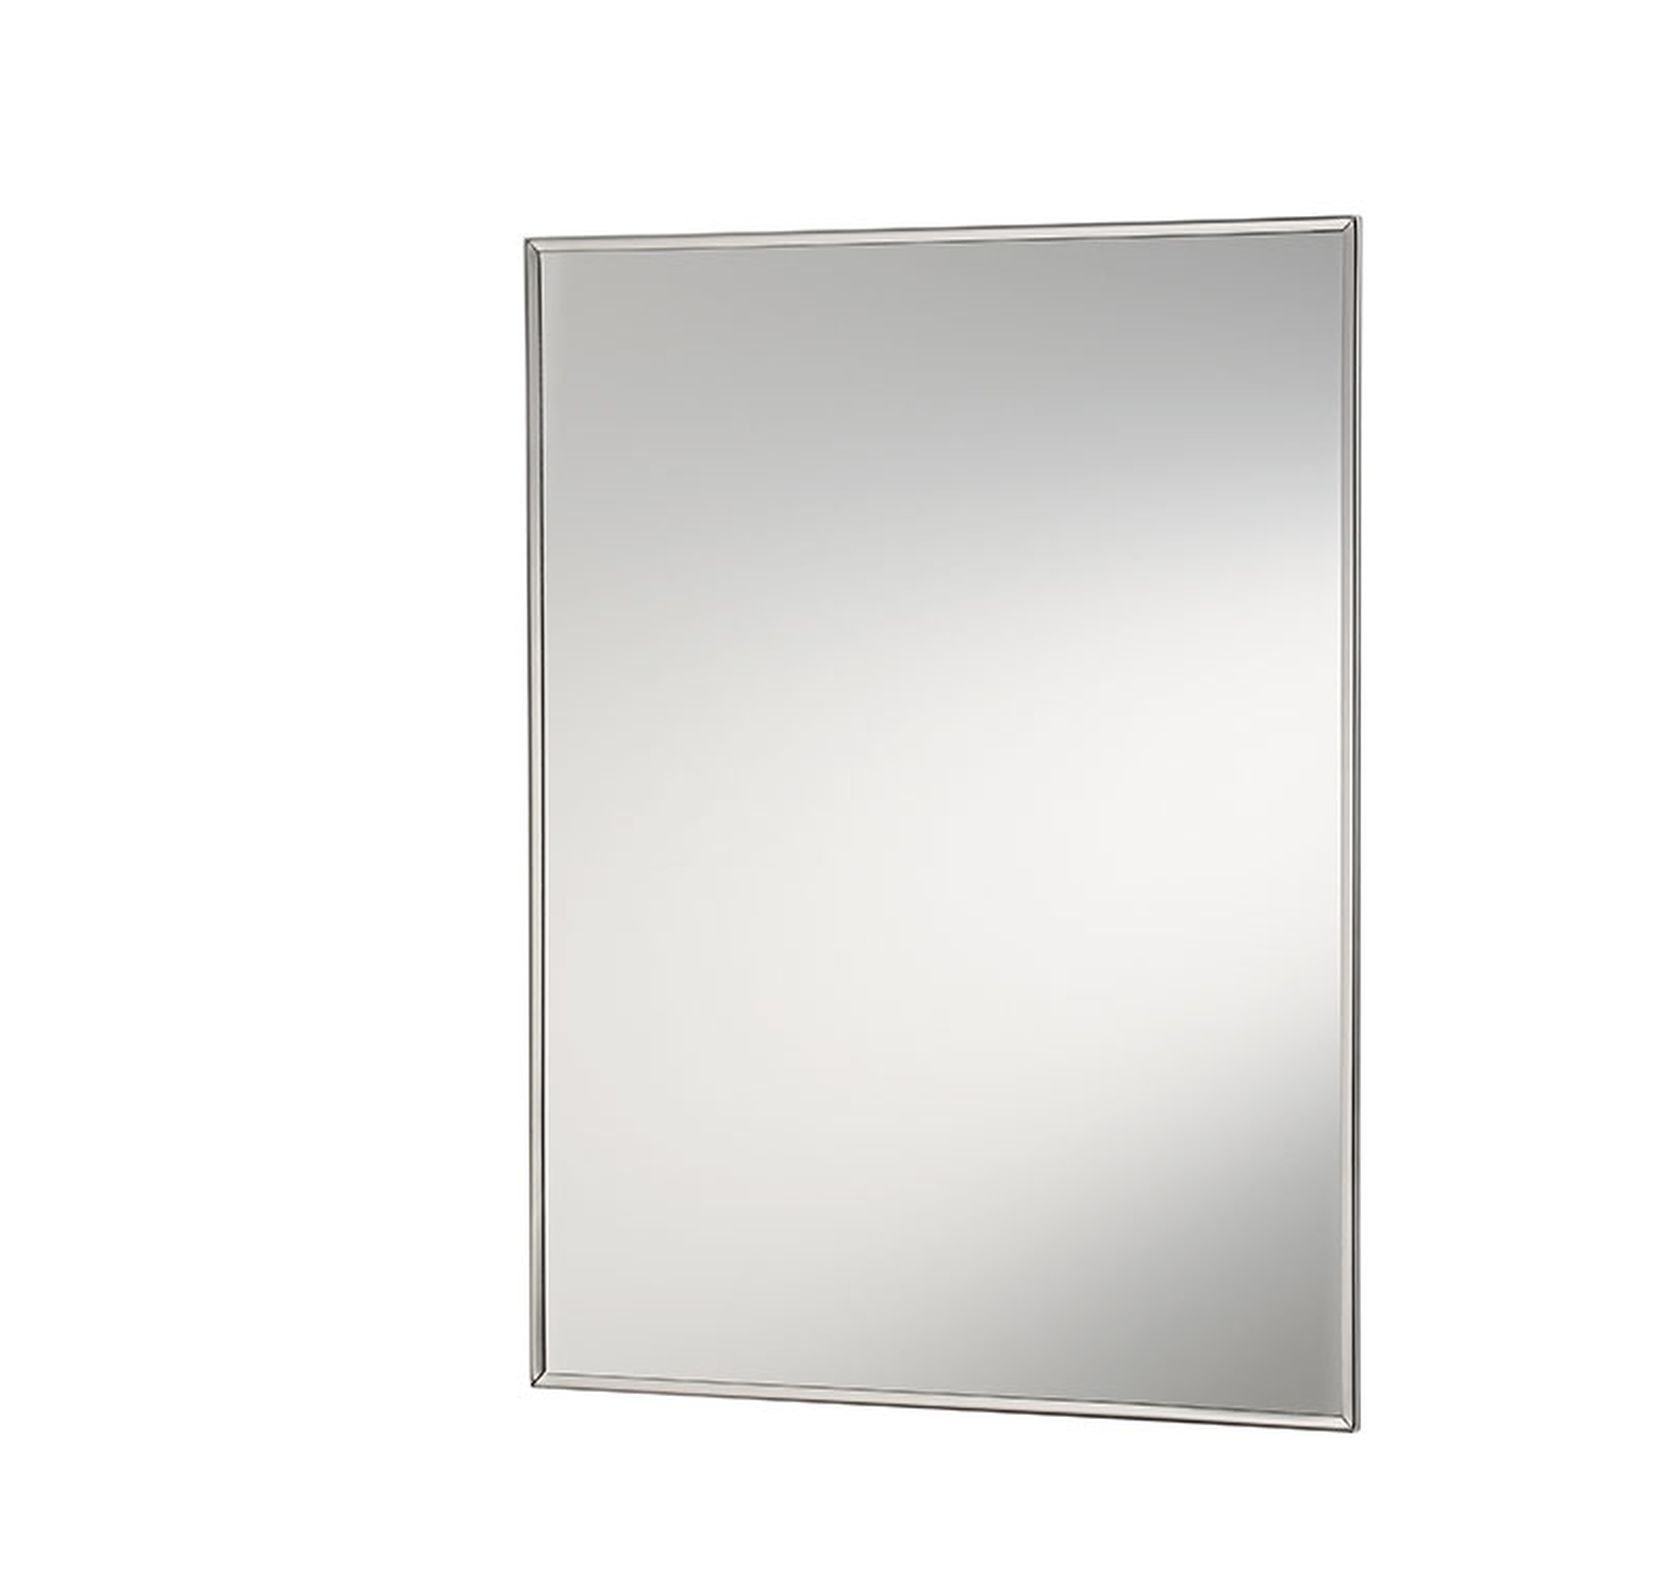 "Jensen 401ADJX Stainless Steel Frame Medicine Cabinet, 16"" x 20"" - Recess mount: wall opening - 14 inch w x 18 inch H Left or right hand opening; butt hinge Stainless steel Frame - shelves-cabinets, bathroom-fixtures-hardware, bathroom - 61zI4ST48nL -"